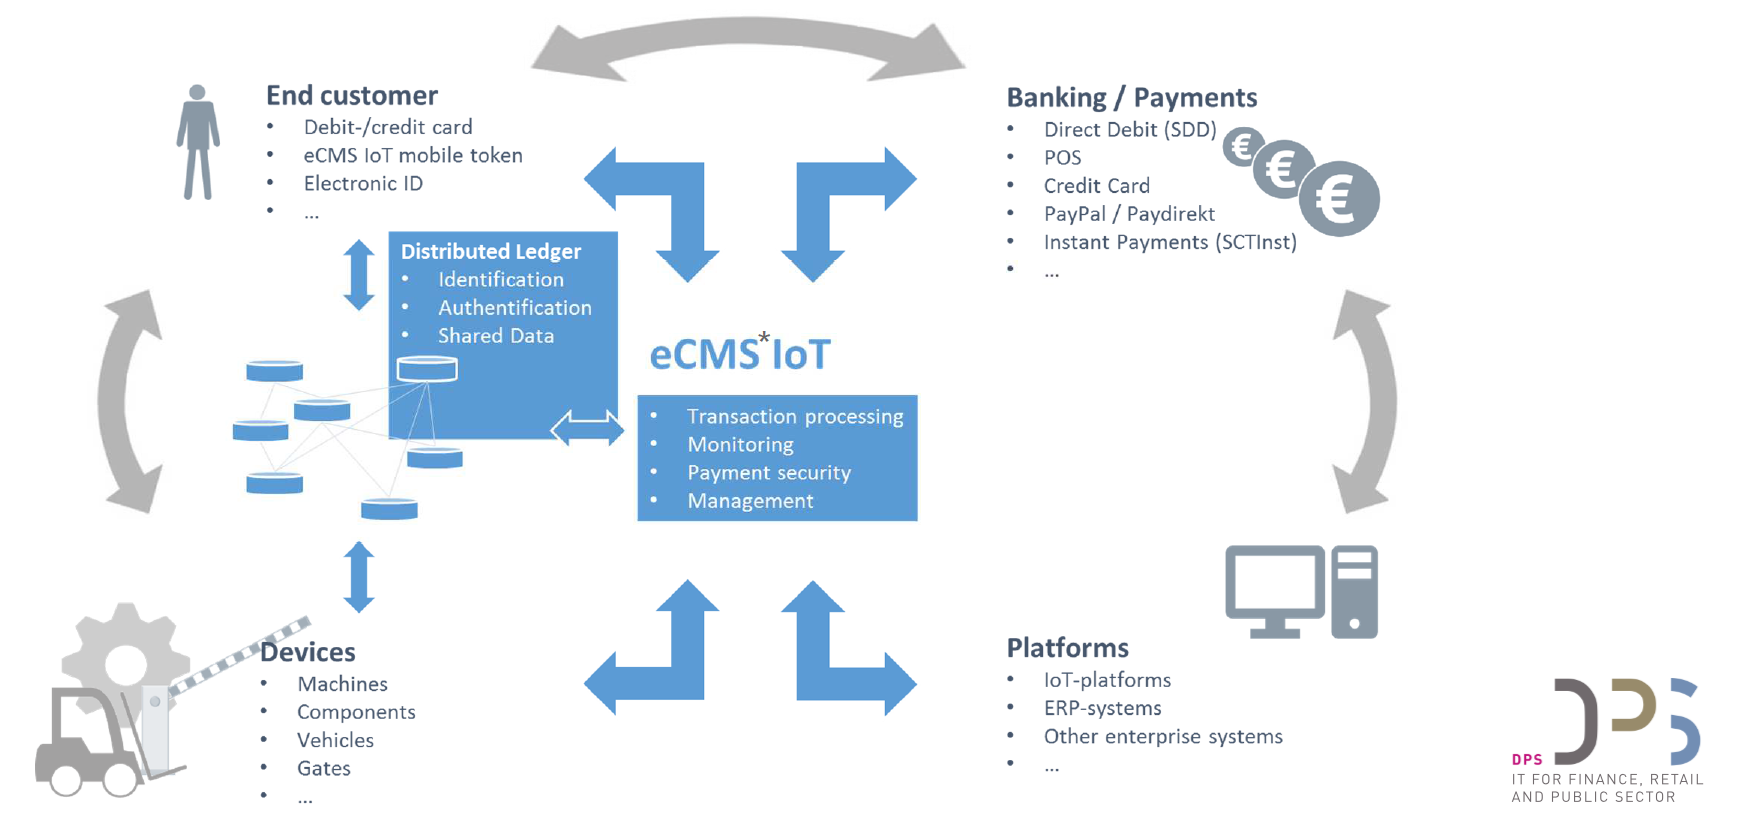 *eCMS is a product of the DPS Group to service self-service machines like ATMs